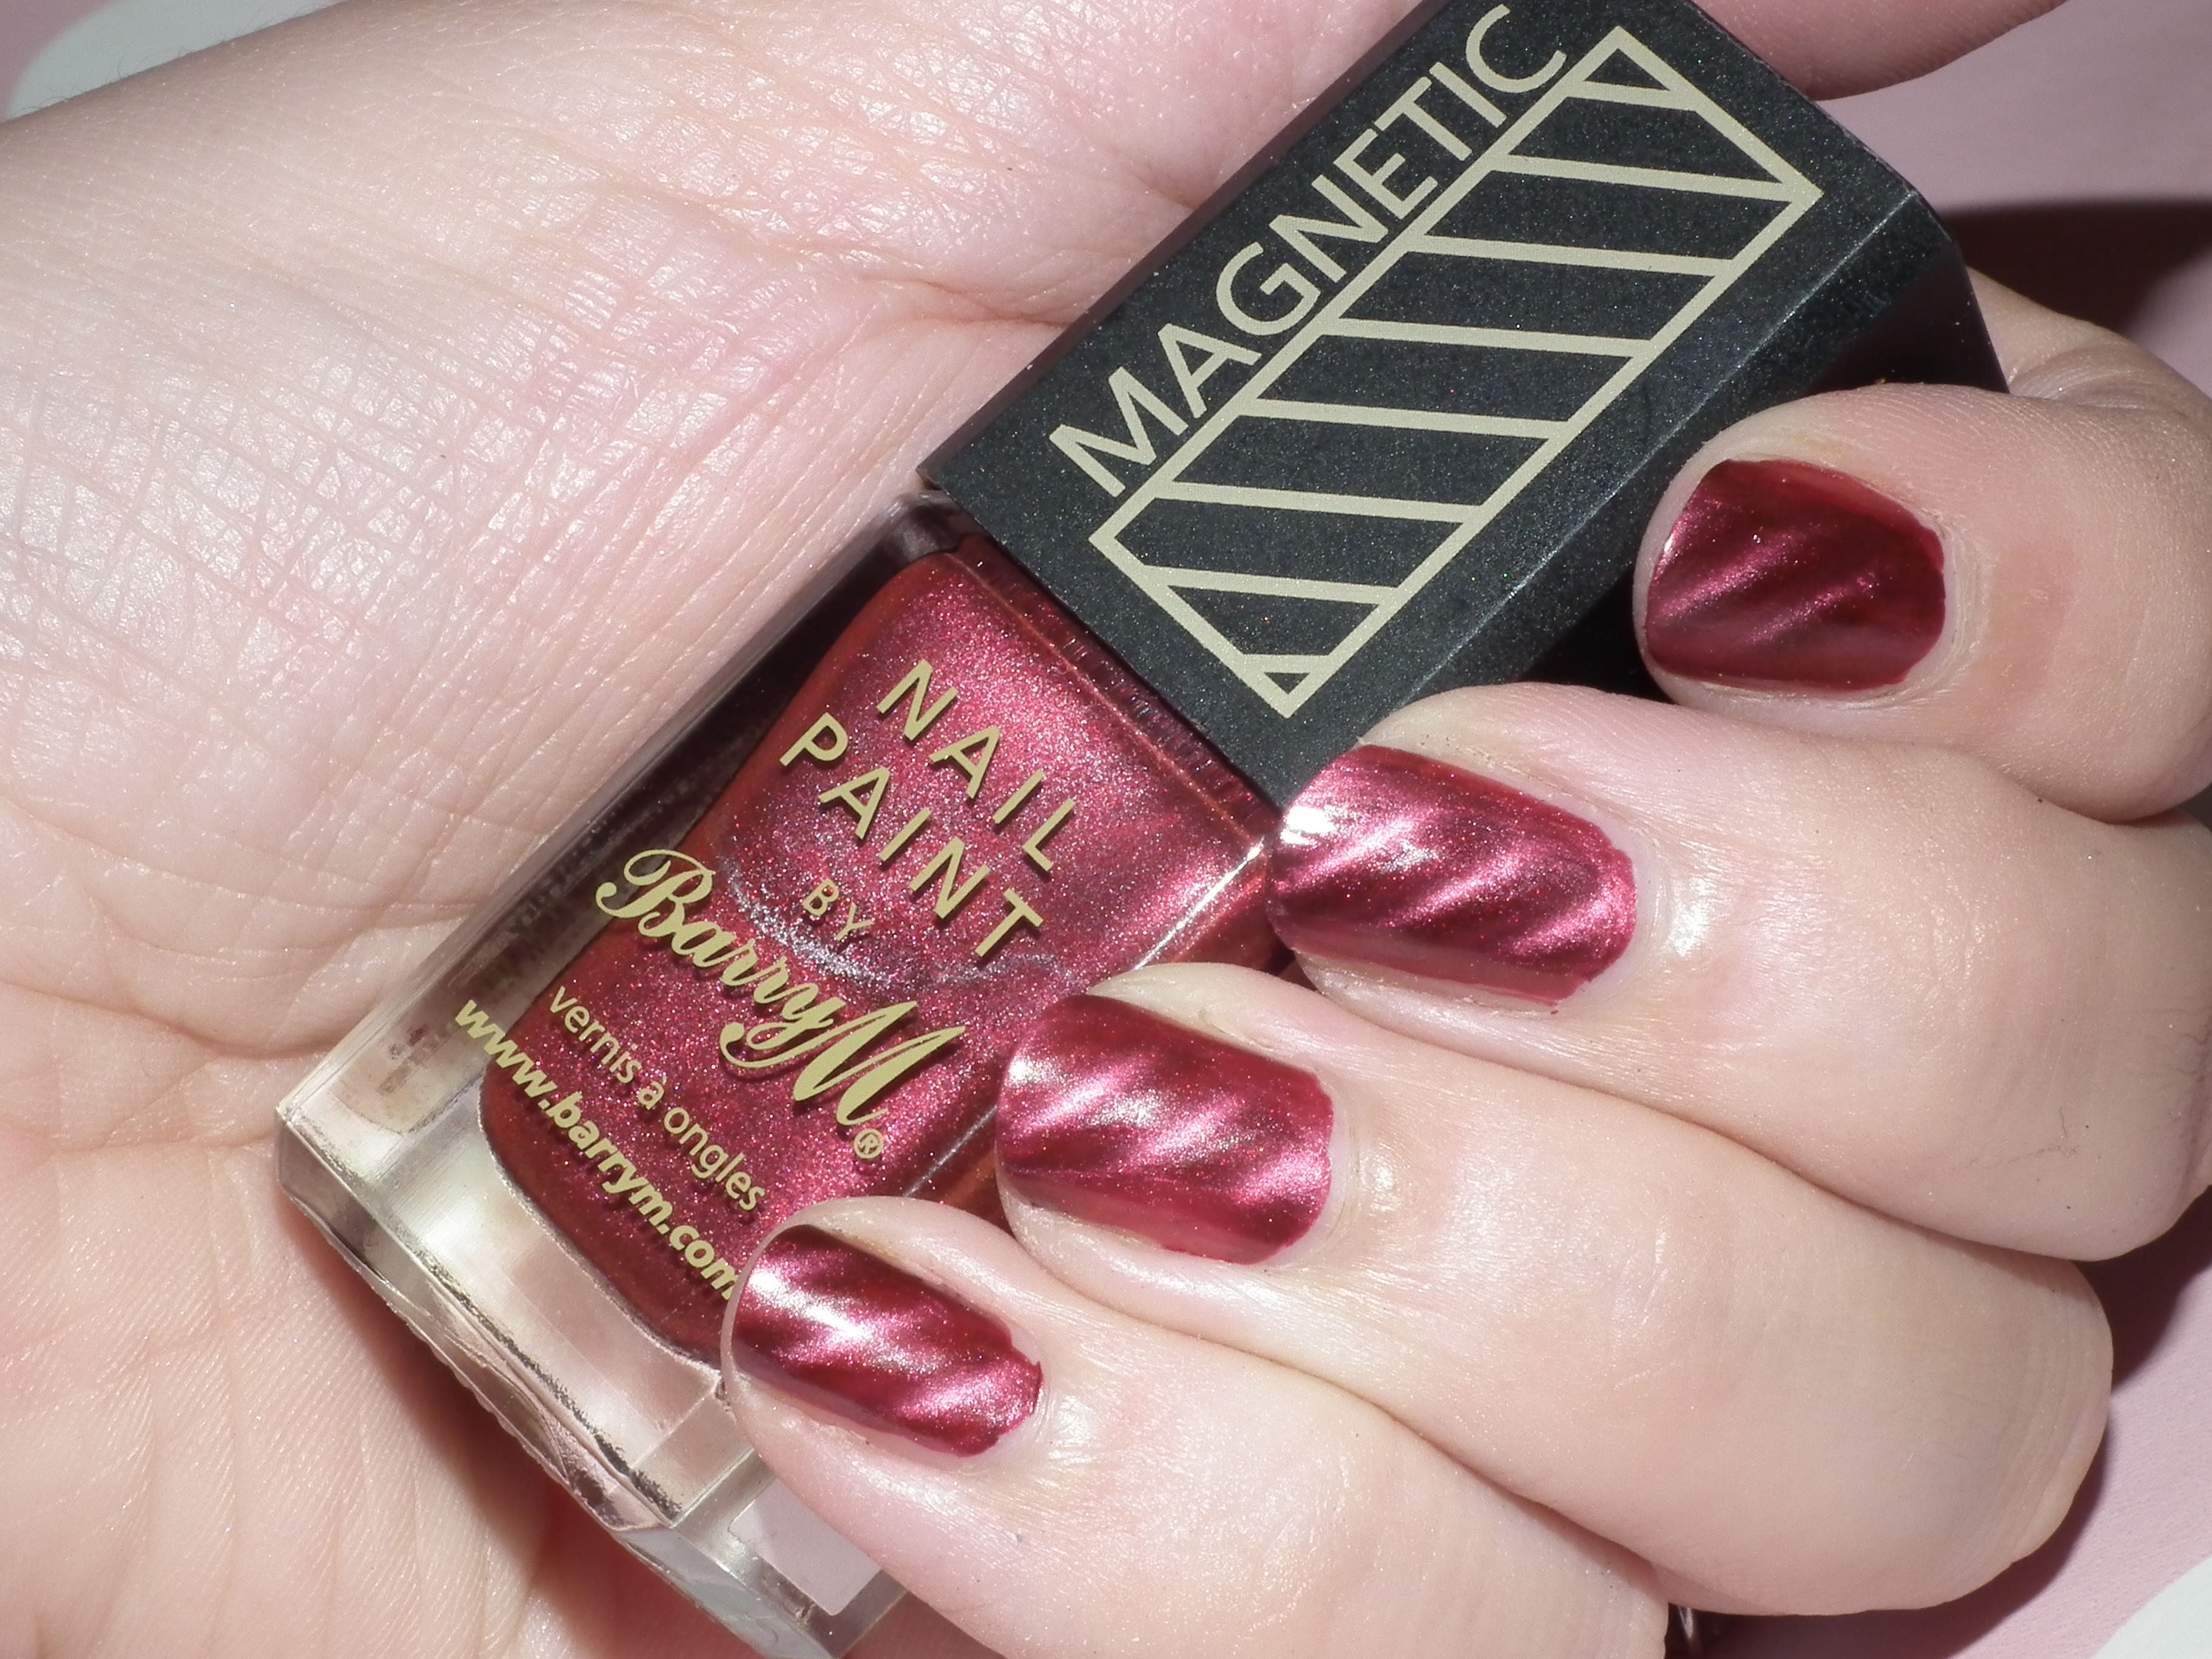 The Polish Looks Great And